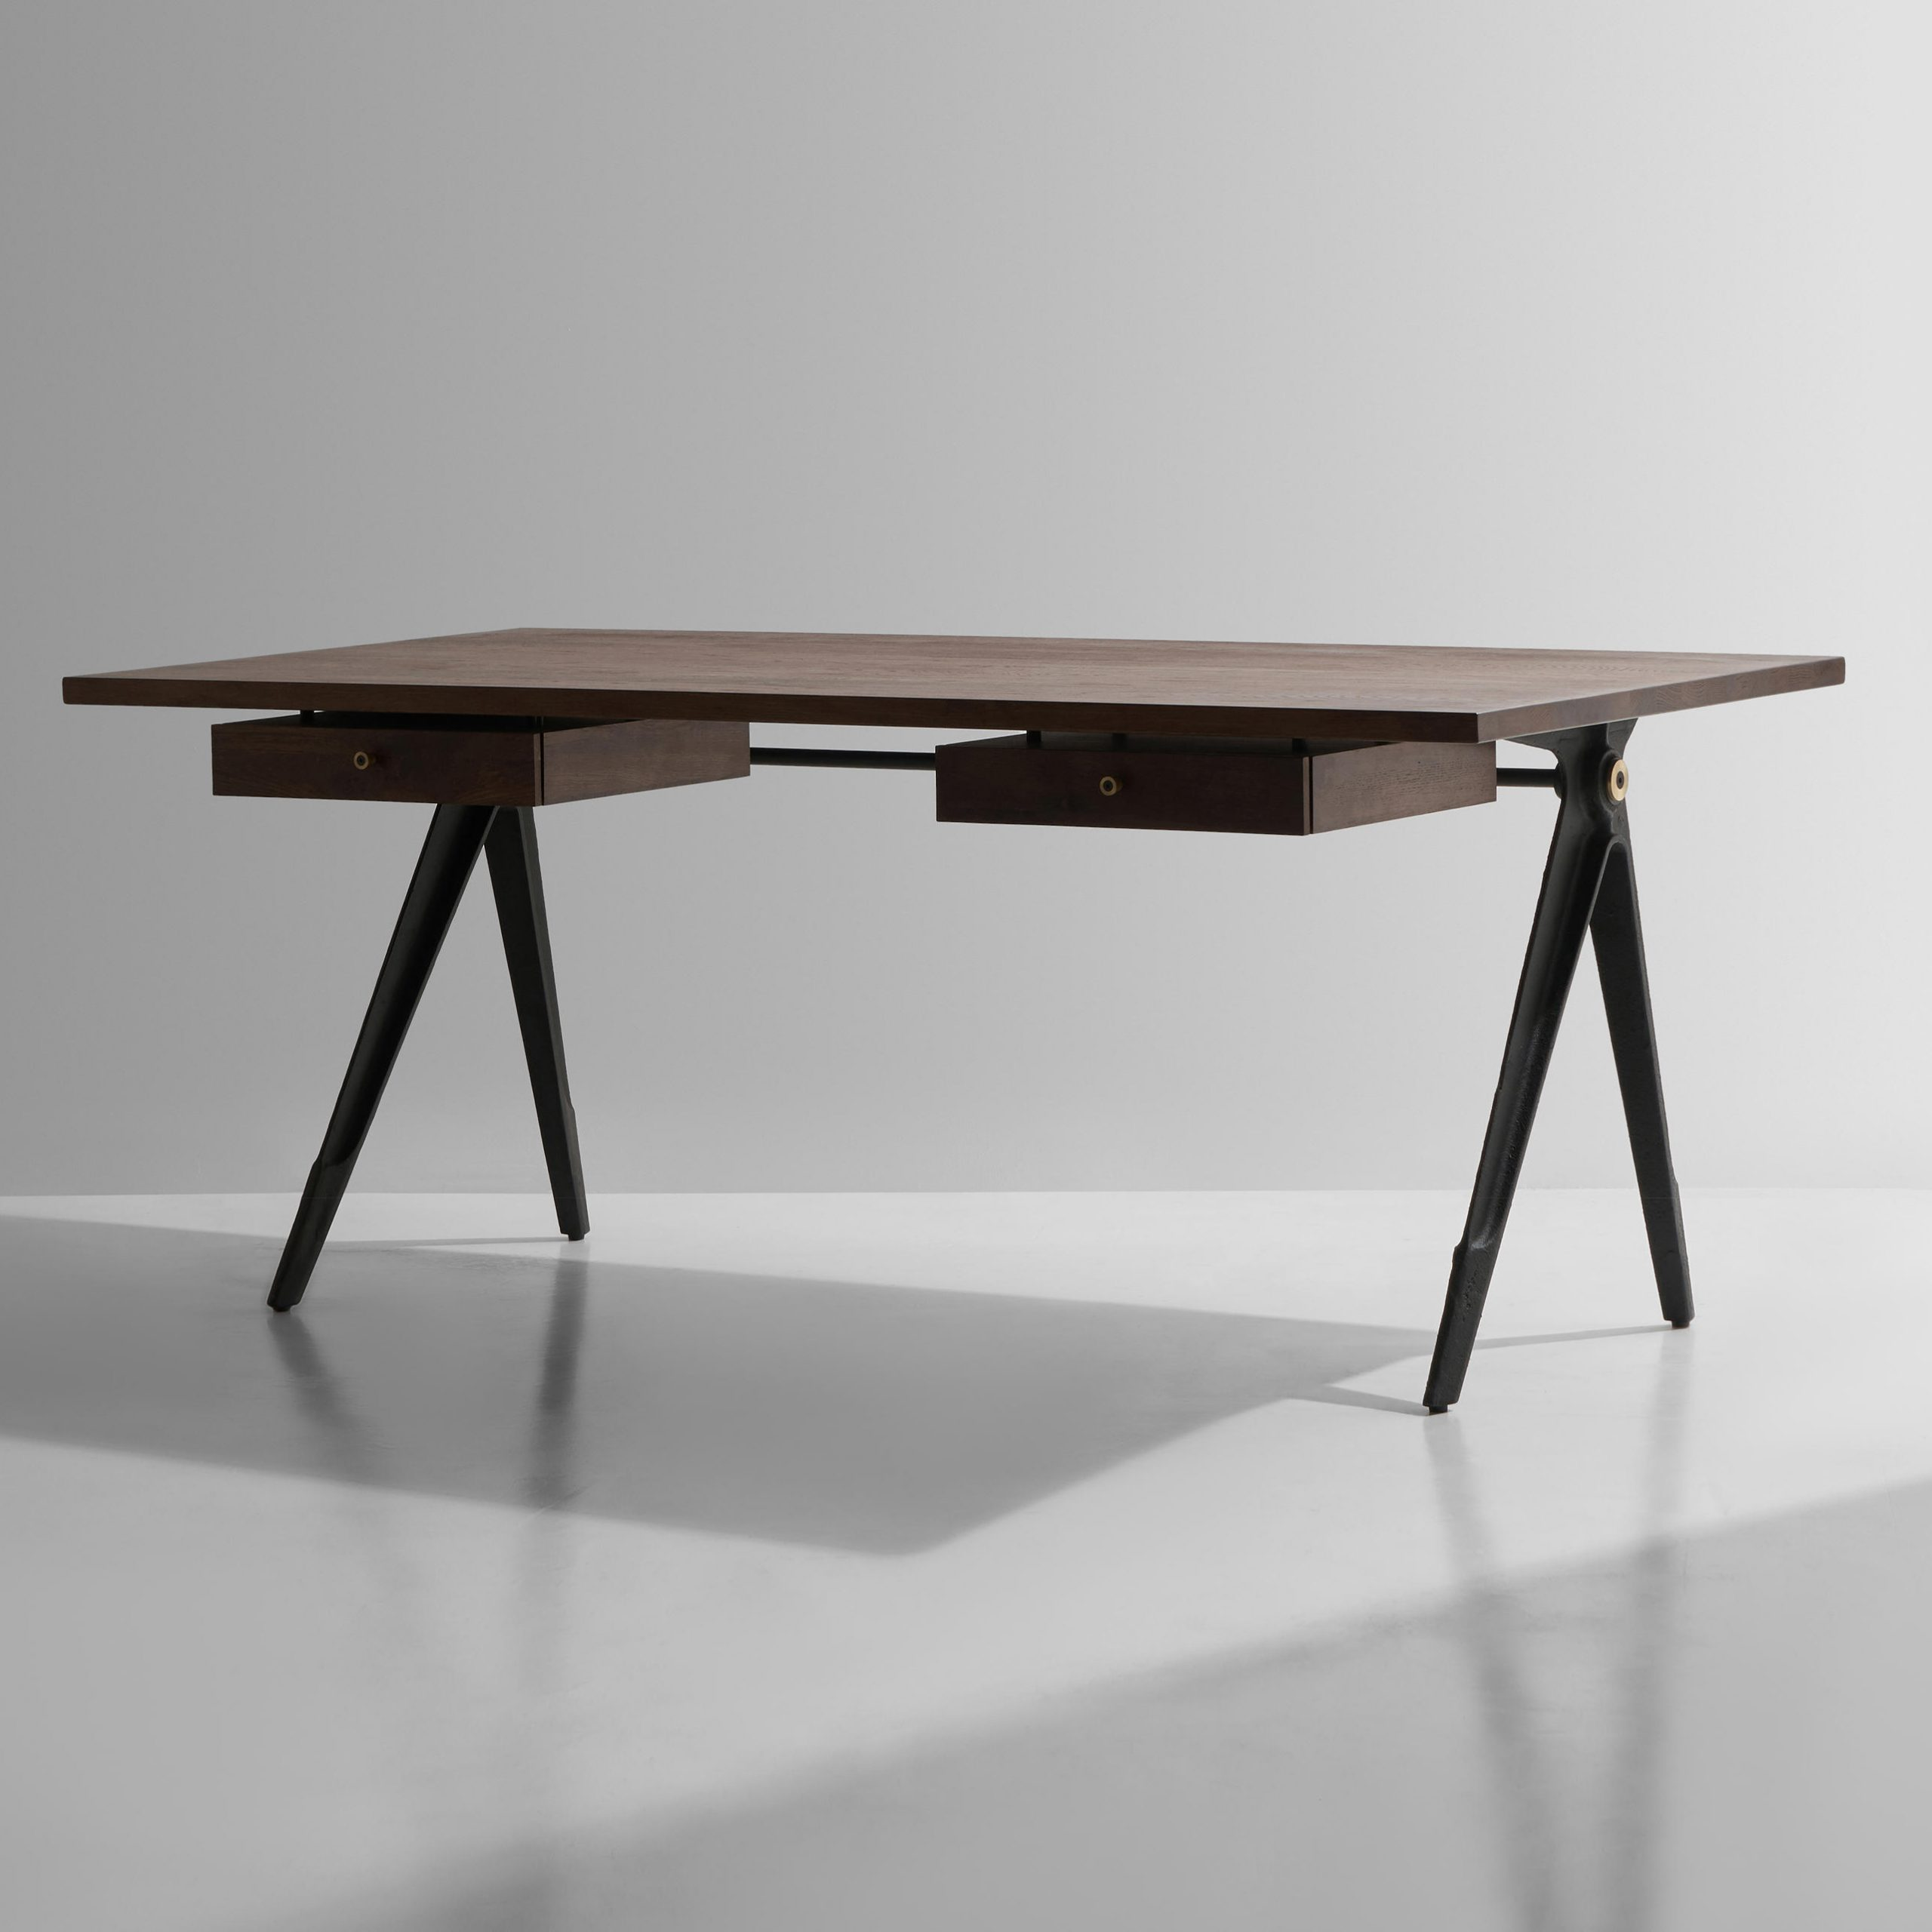 Architonic Throughout Trendy Dining Tables In Smoked Seared Oak (View 10 of 30)